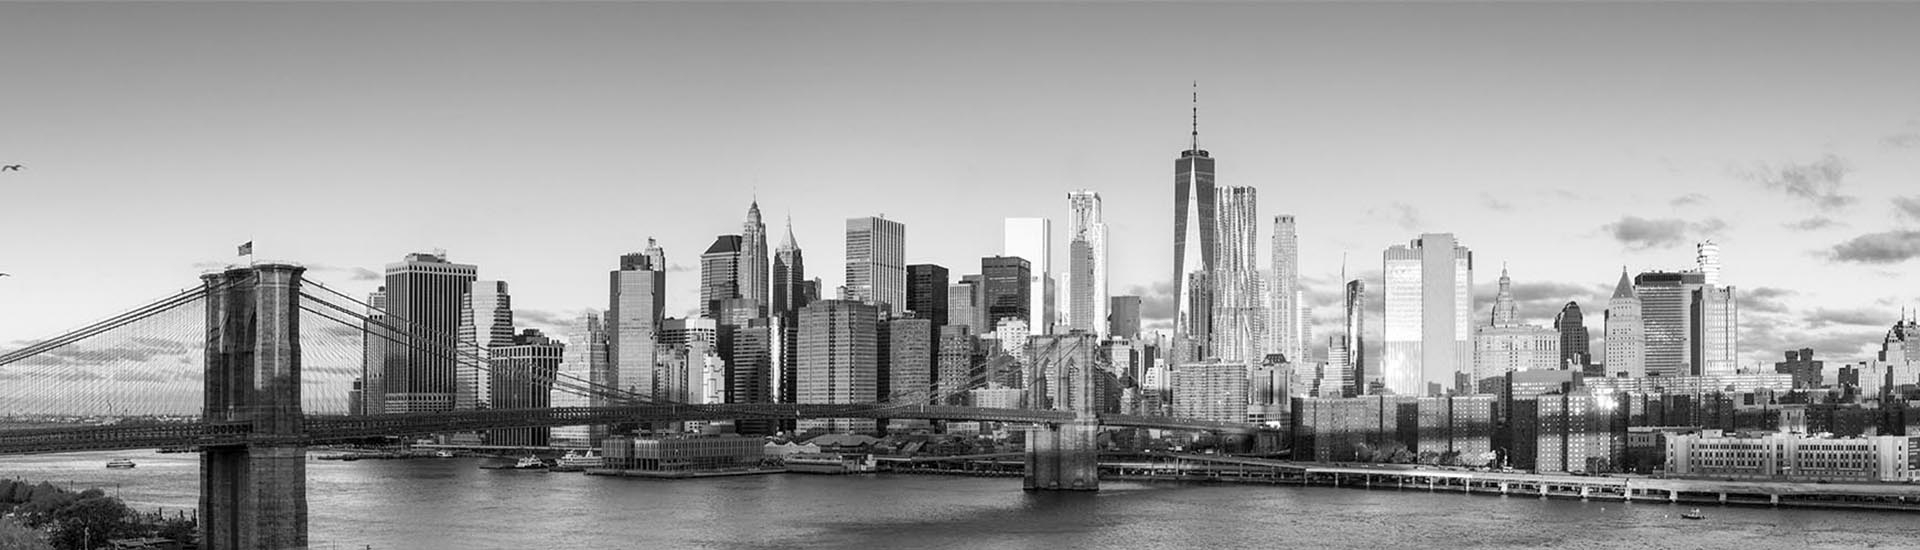 picture of new york city skyline